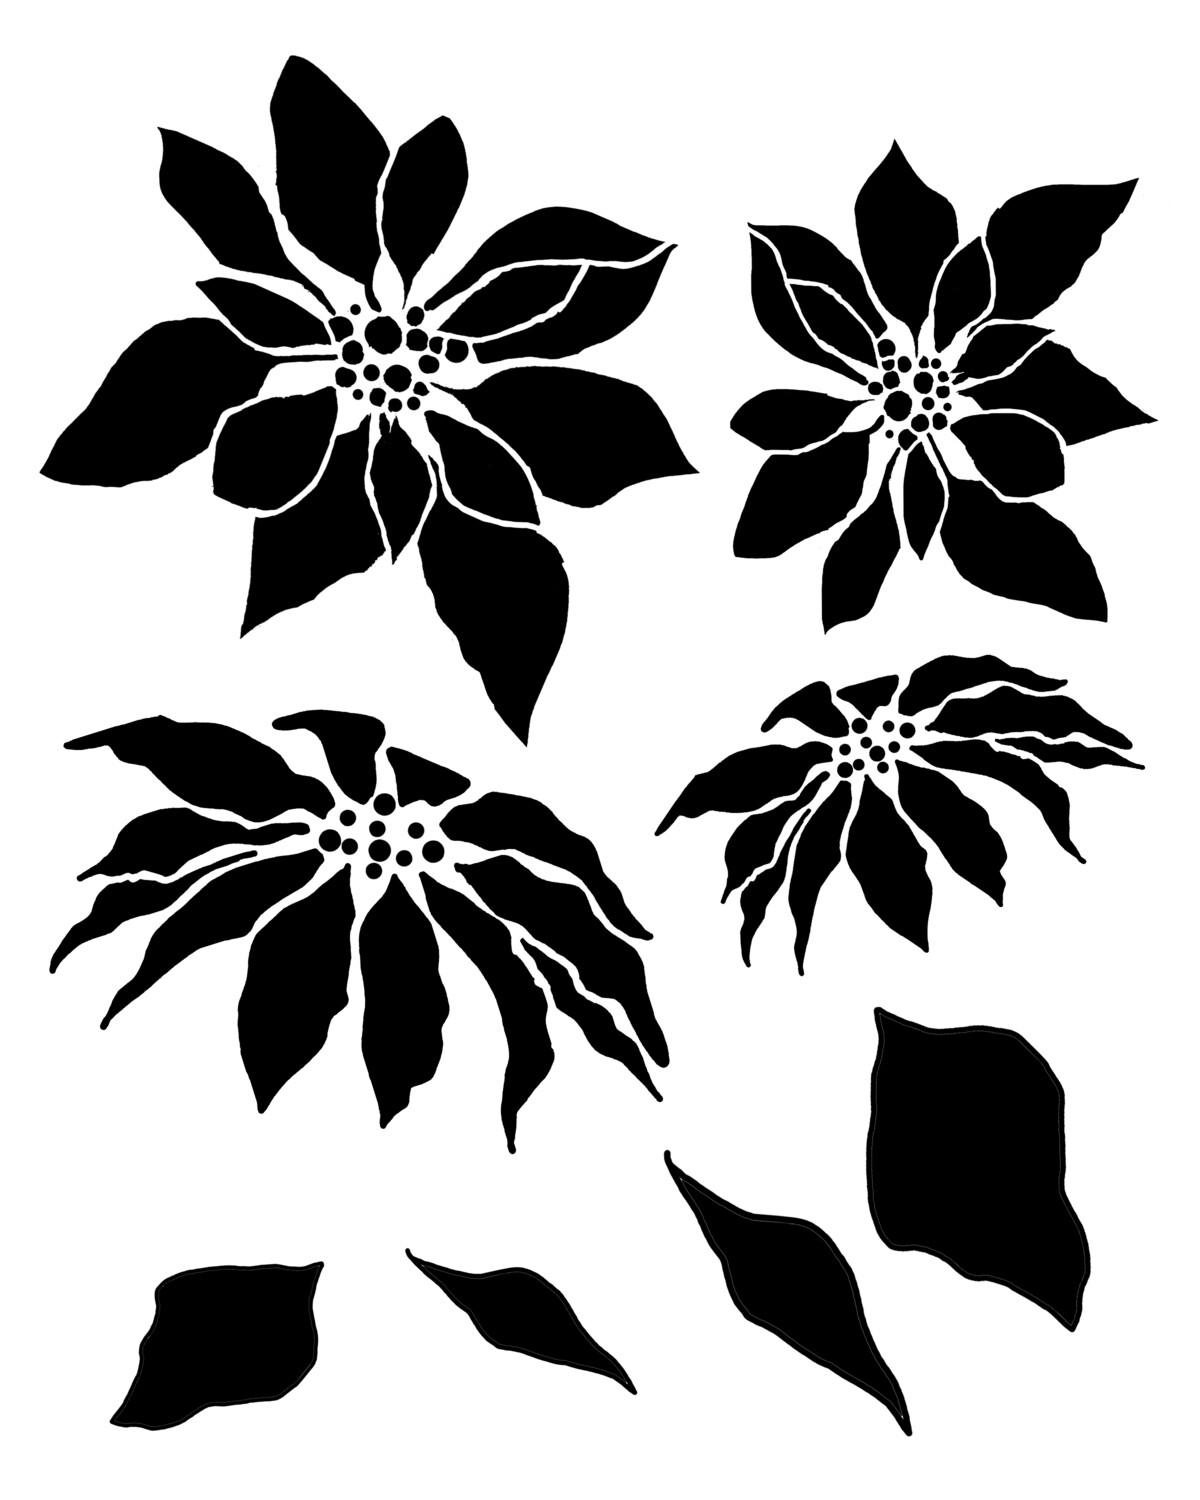 Poinsettia and Leaves stencil 12x16